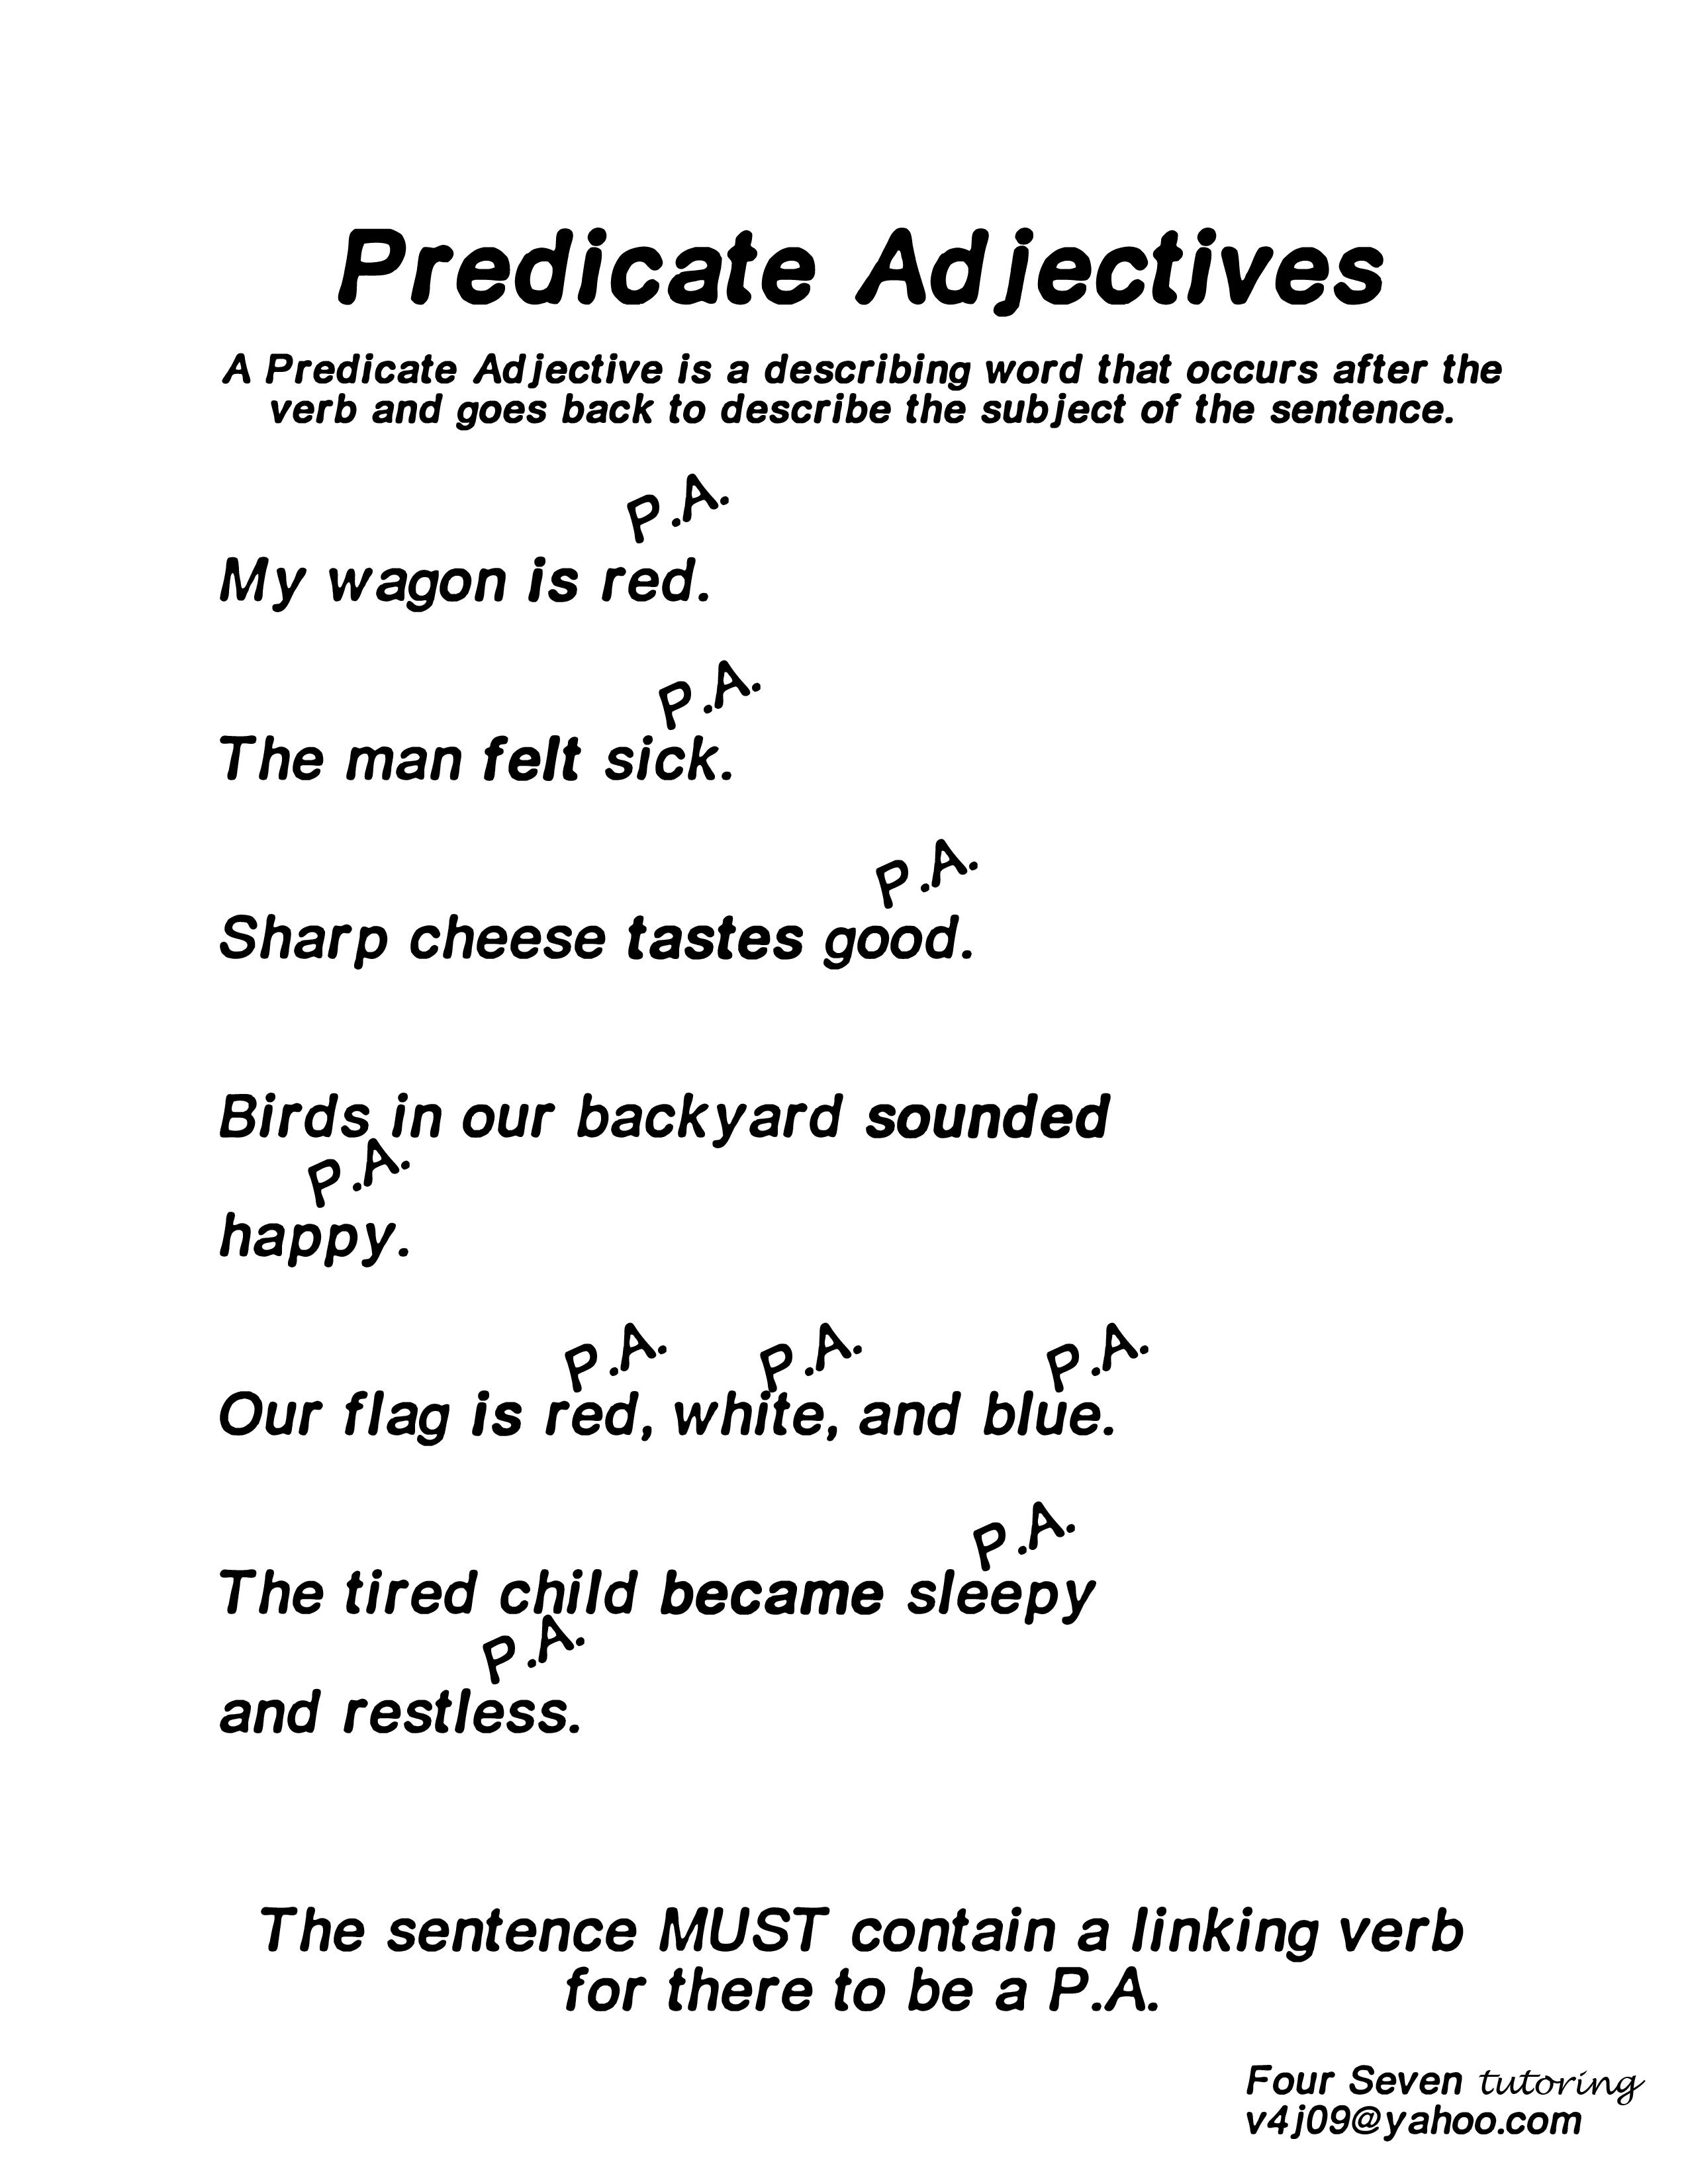 Predicate Adjectives Resource